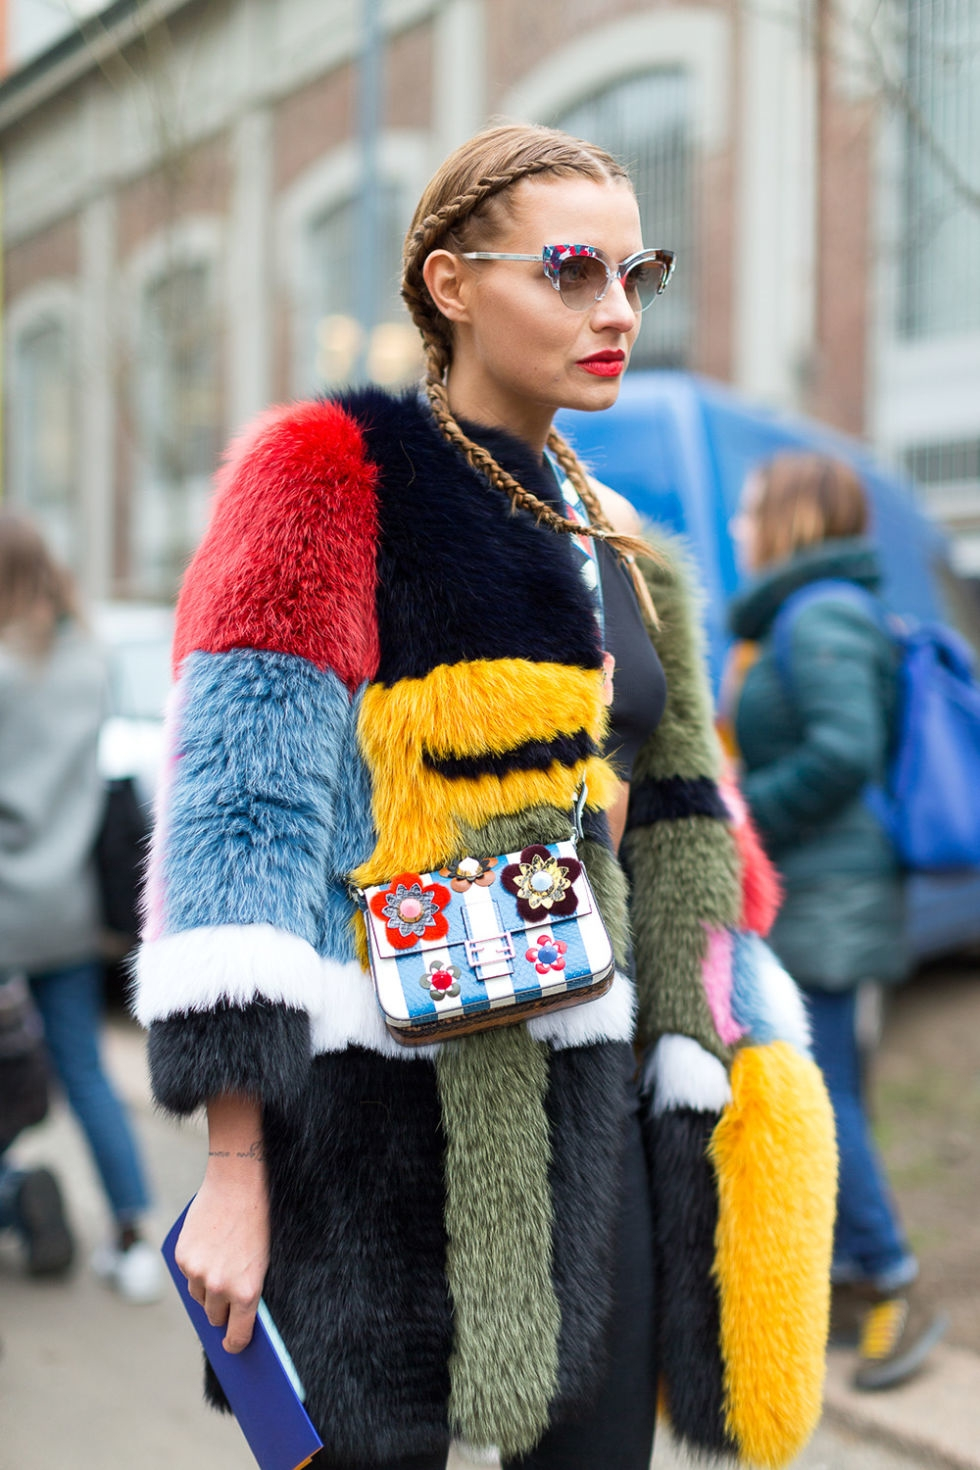 hbz-street-style-trends-fall-2016-bigger-better-furs-04.jpg